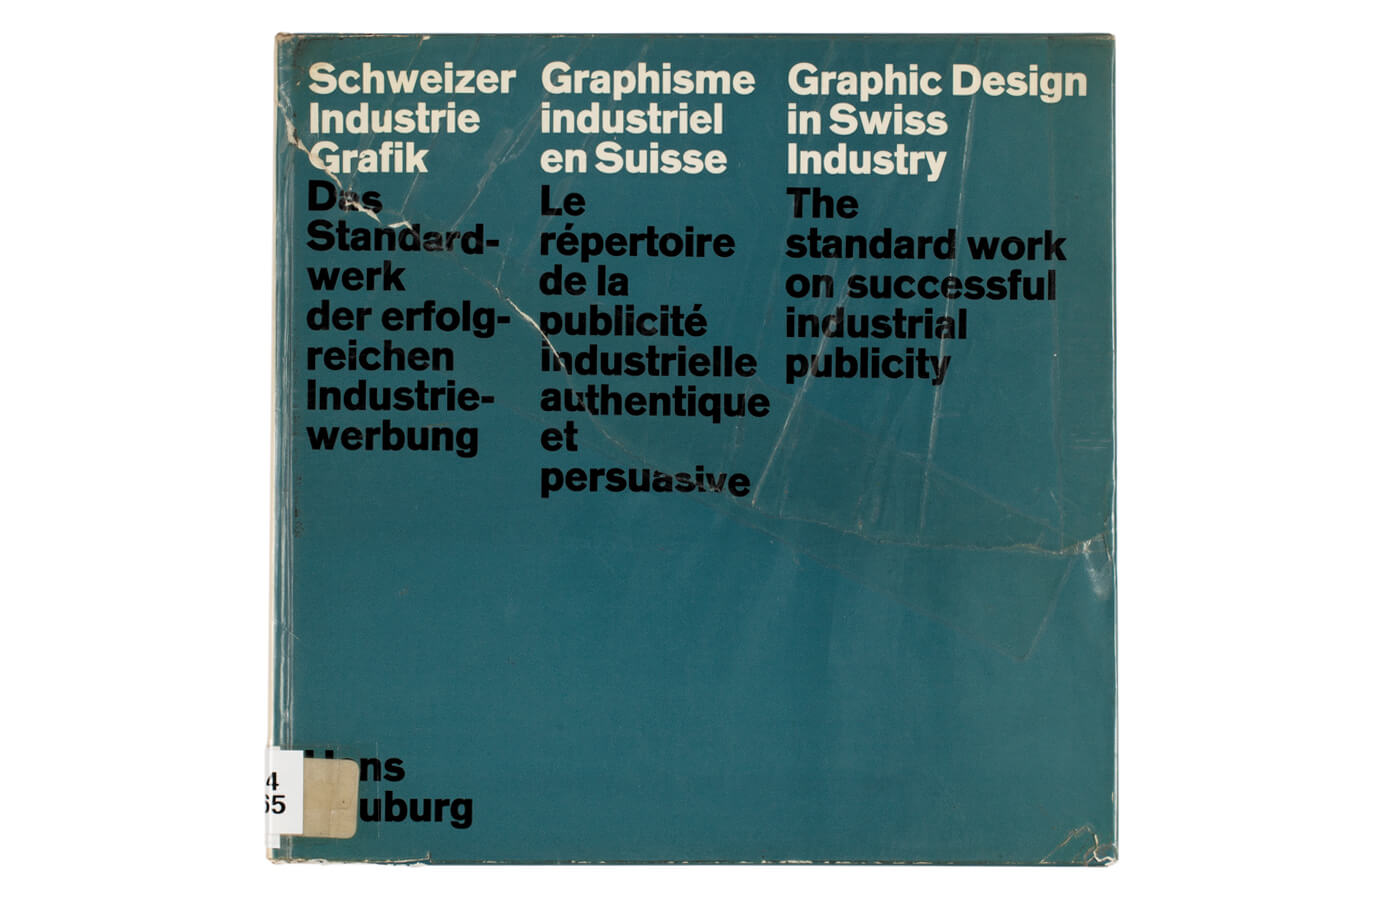 Schweizer Industrie Grafik | Graphisme industriel en Suisse | Graphic Design in Swiss Industry